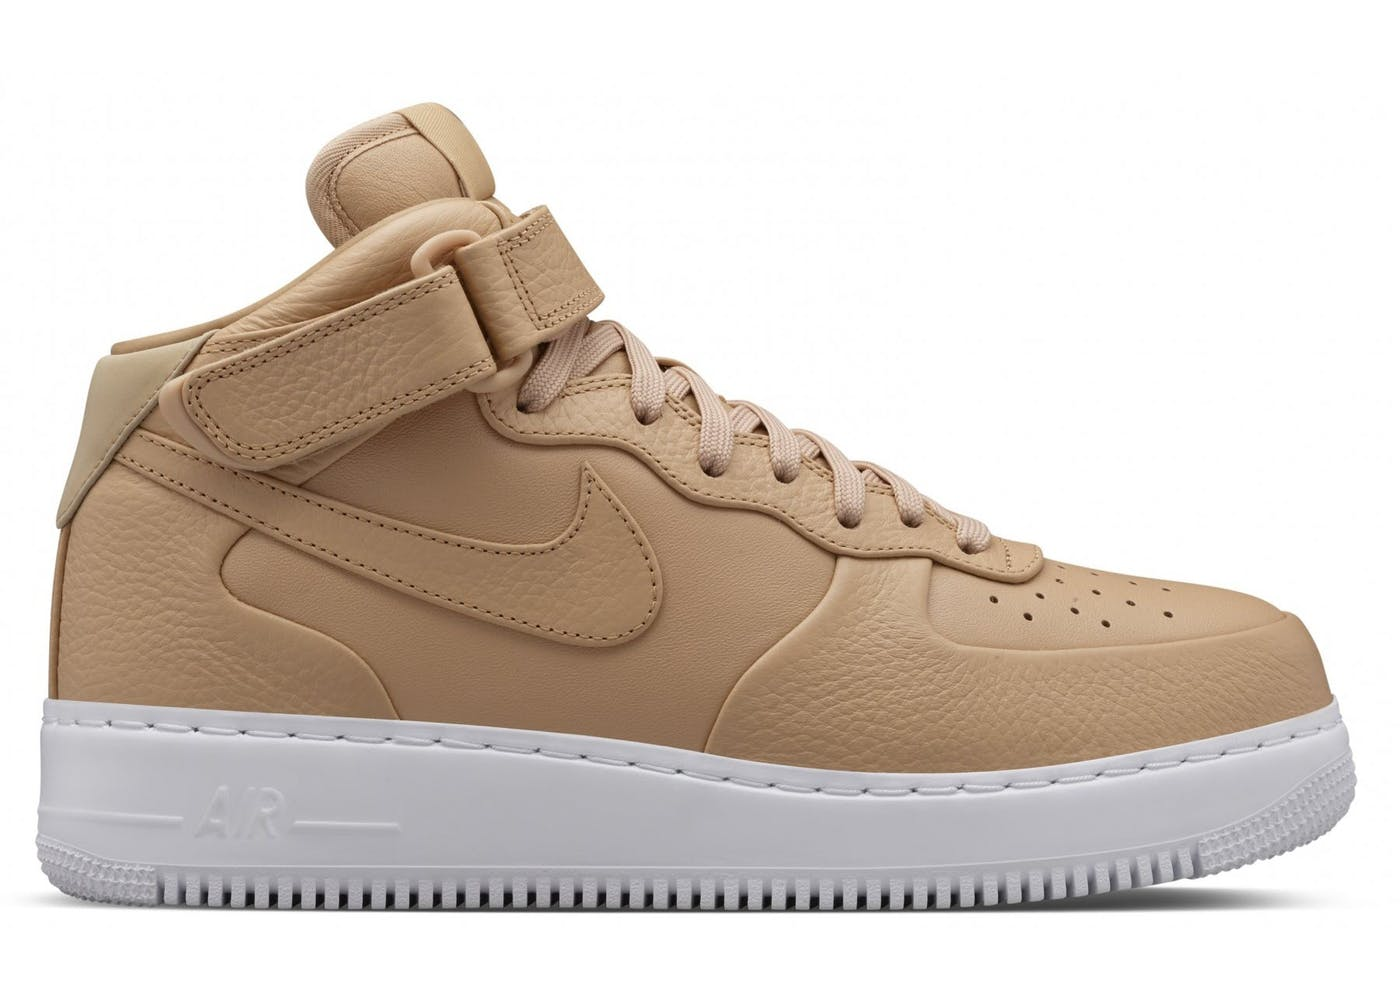 Nike Air Force 1 Low LV8 White/Vachetta Tan   Sole Collector